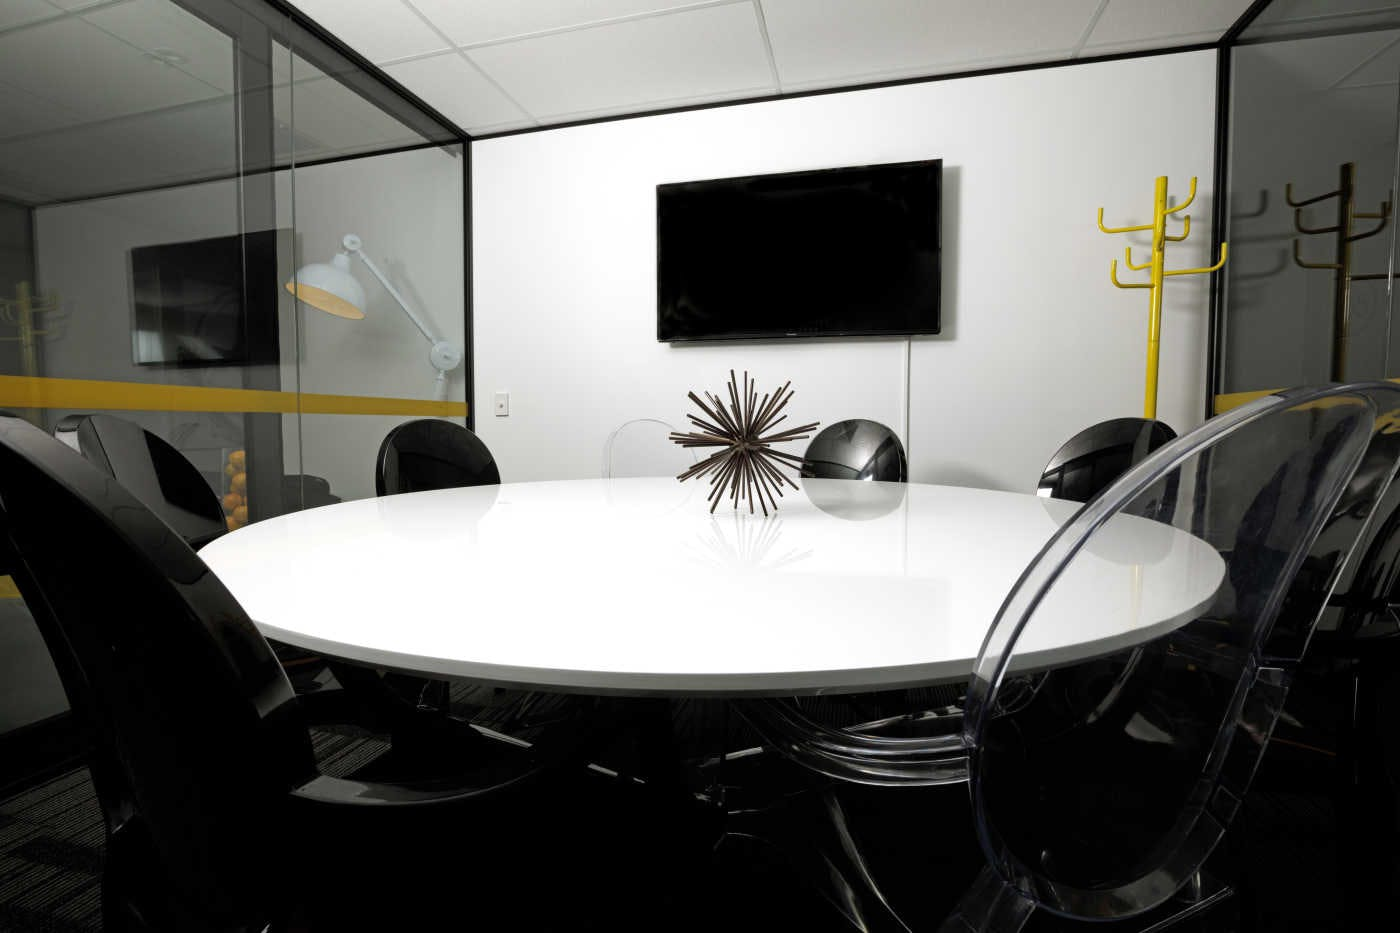 Boardroom, function room at Anytime Offices Botany, image 7